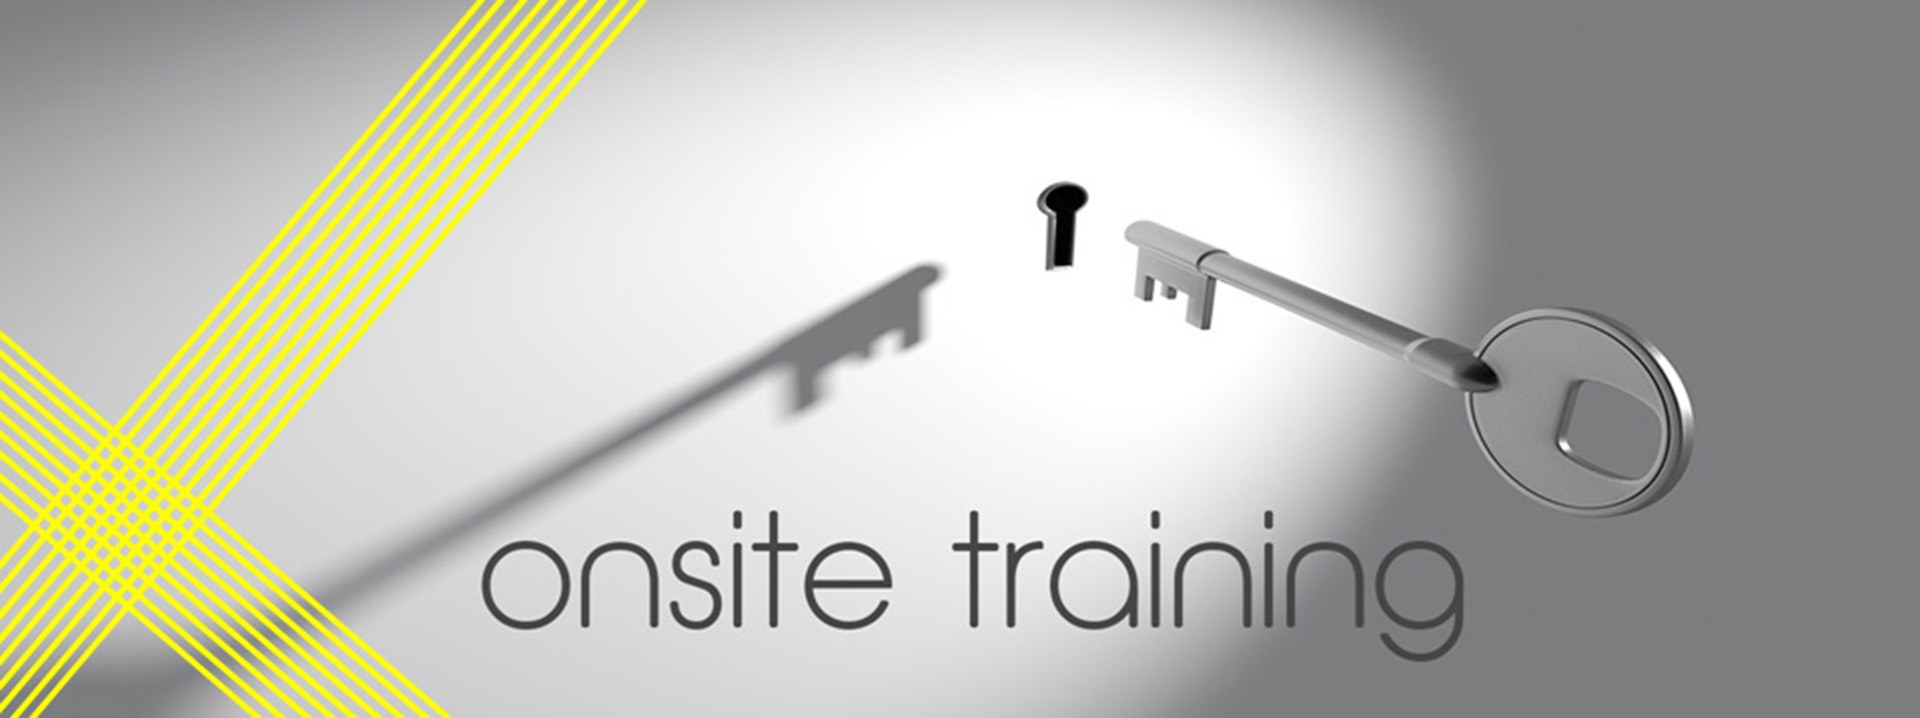 ruansa-training-banner1.jpg